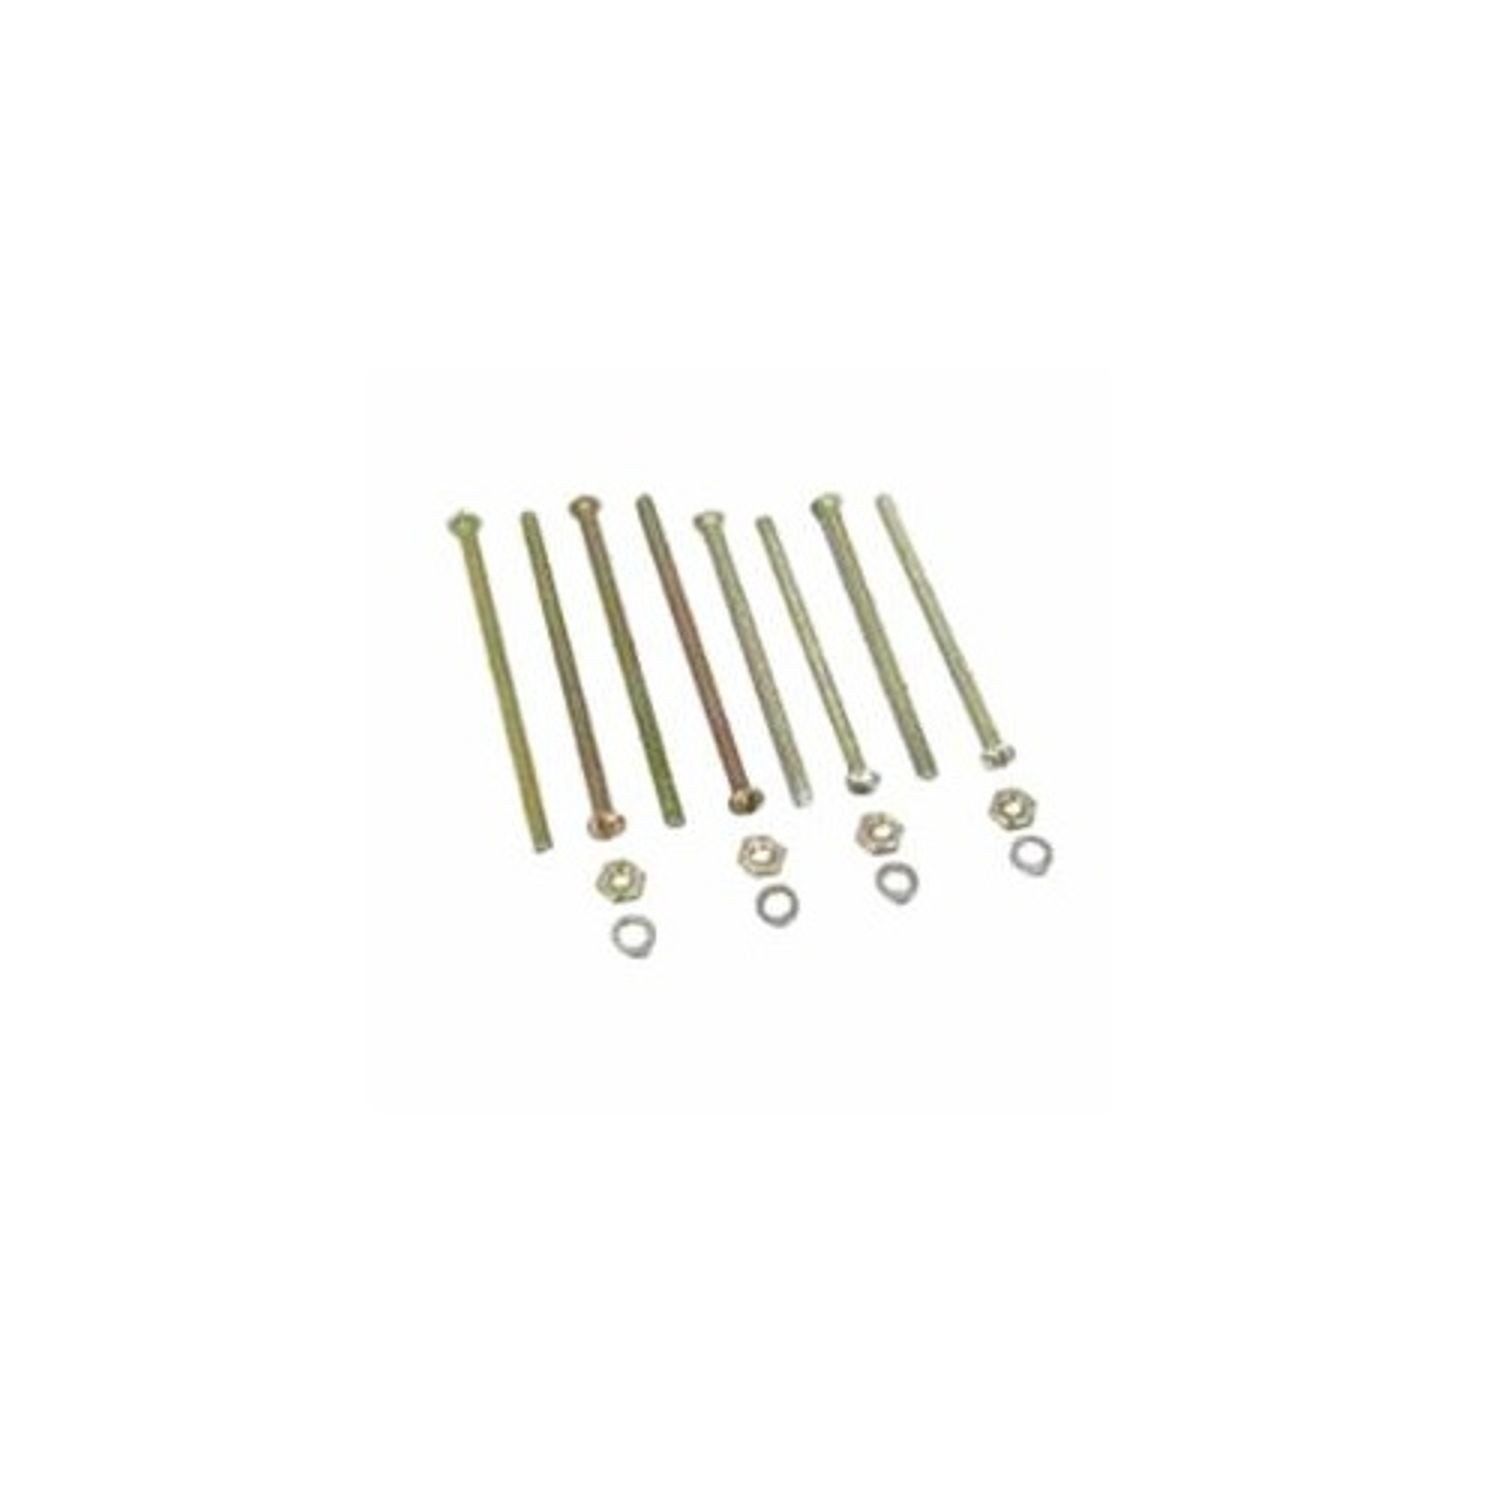 Ge Tqd Mounting Screw Kit For Use With Thqd Series Circuit Uses Of Breaker